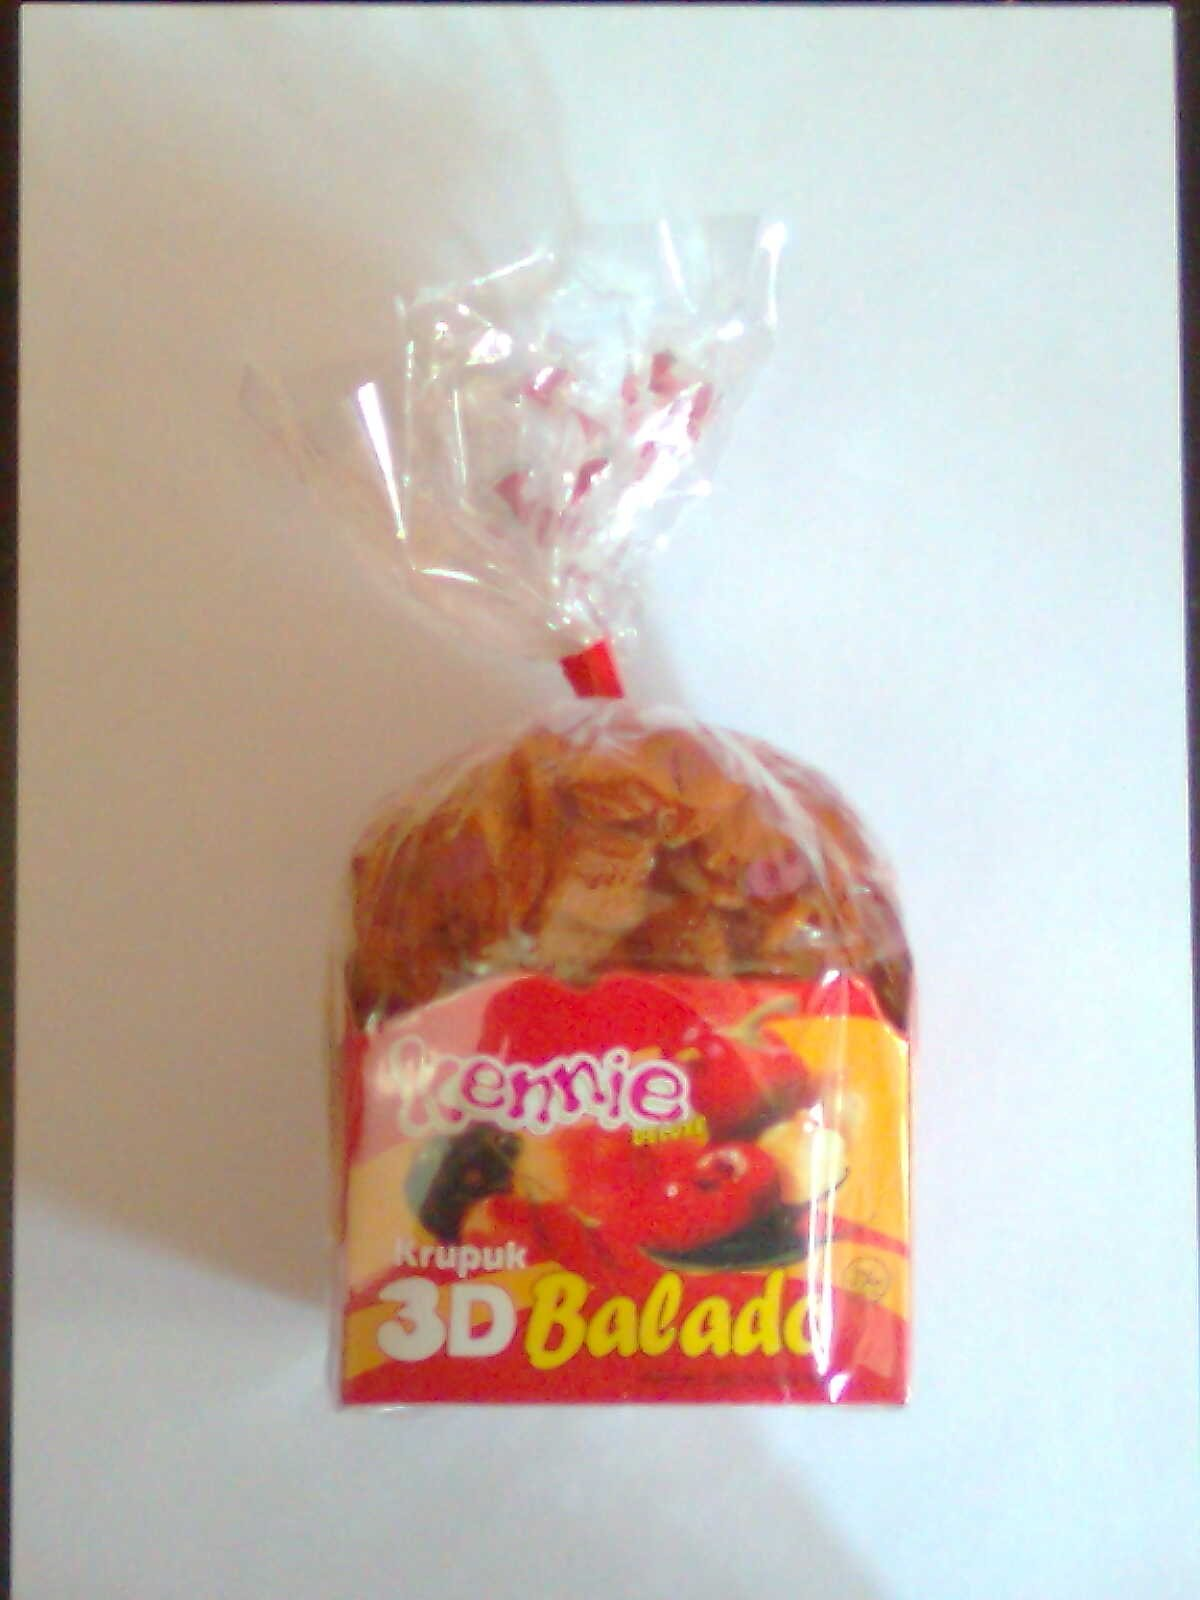 KENNIE CRACKERS BALADO snack